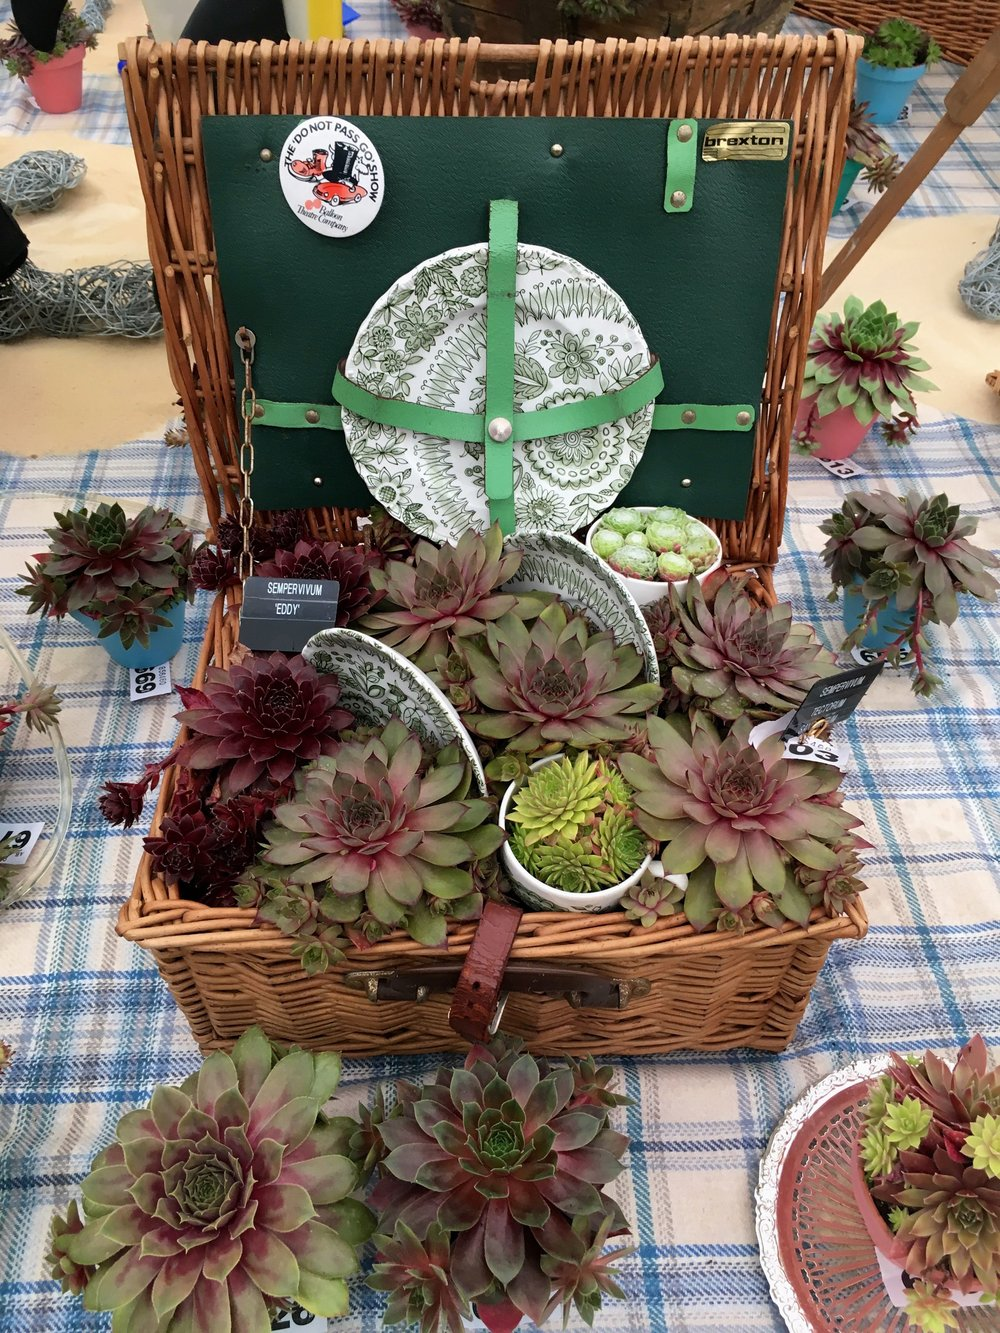 A PICNIC OF SUCCULENTS